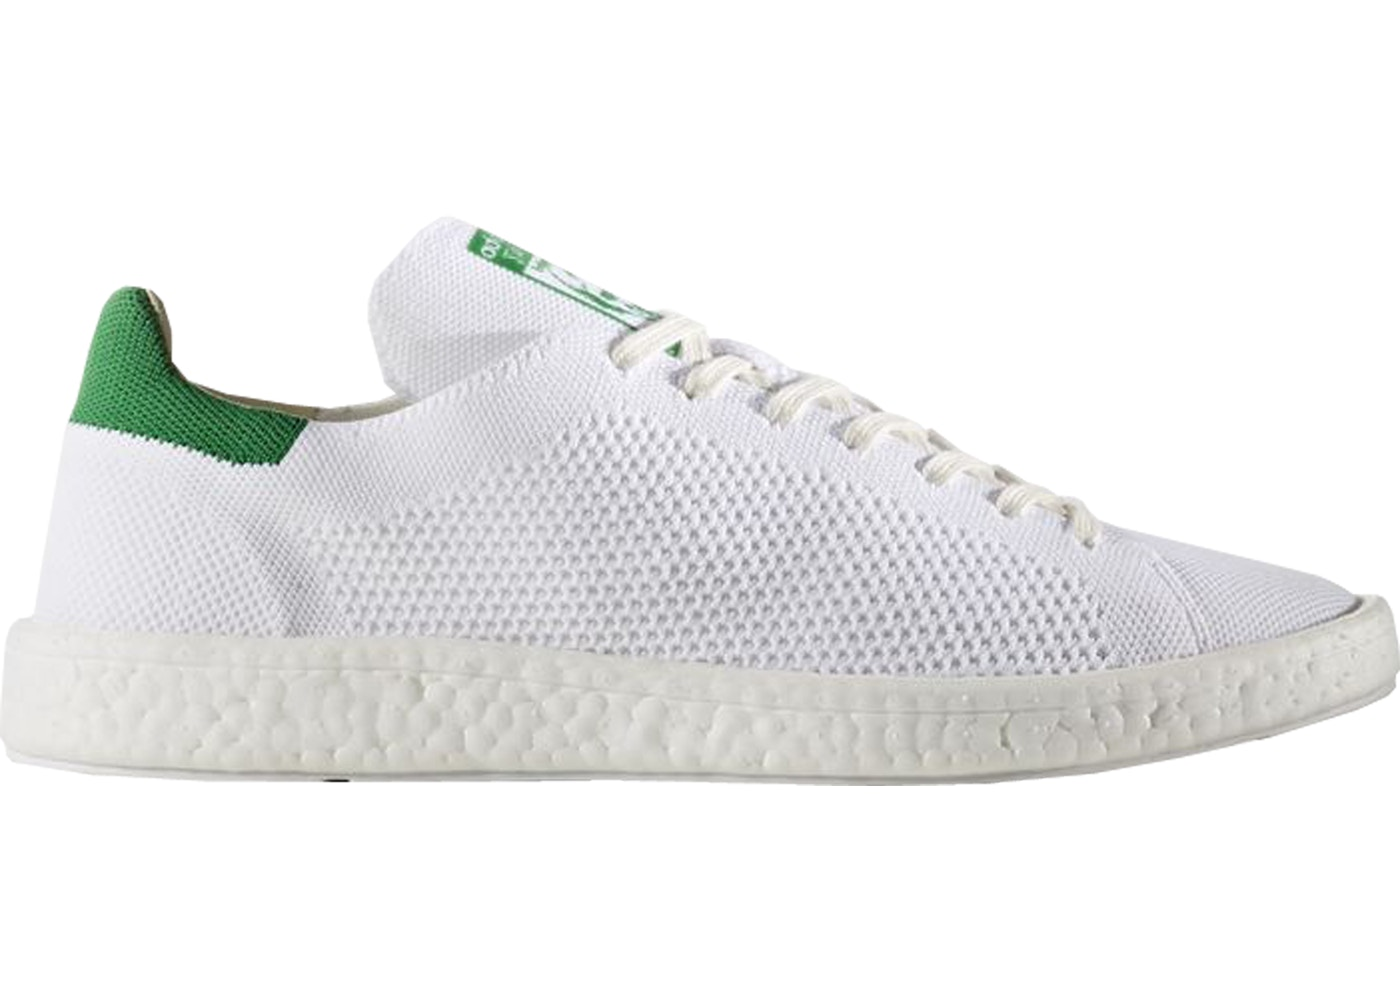 online retailer 684cc 8c3b5 adidas Stan Smith Boost Primeknit White Green